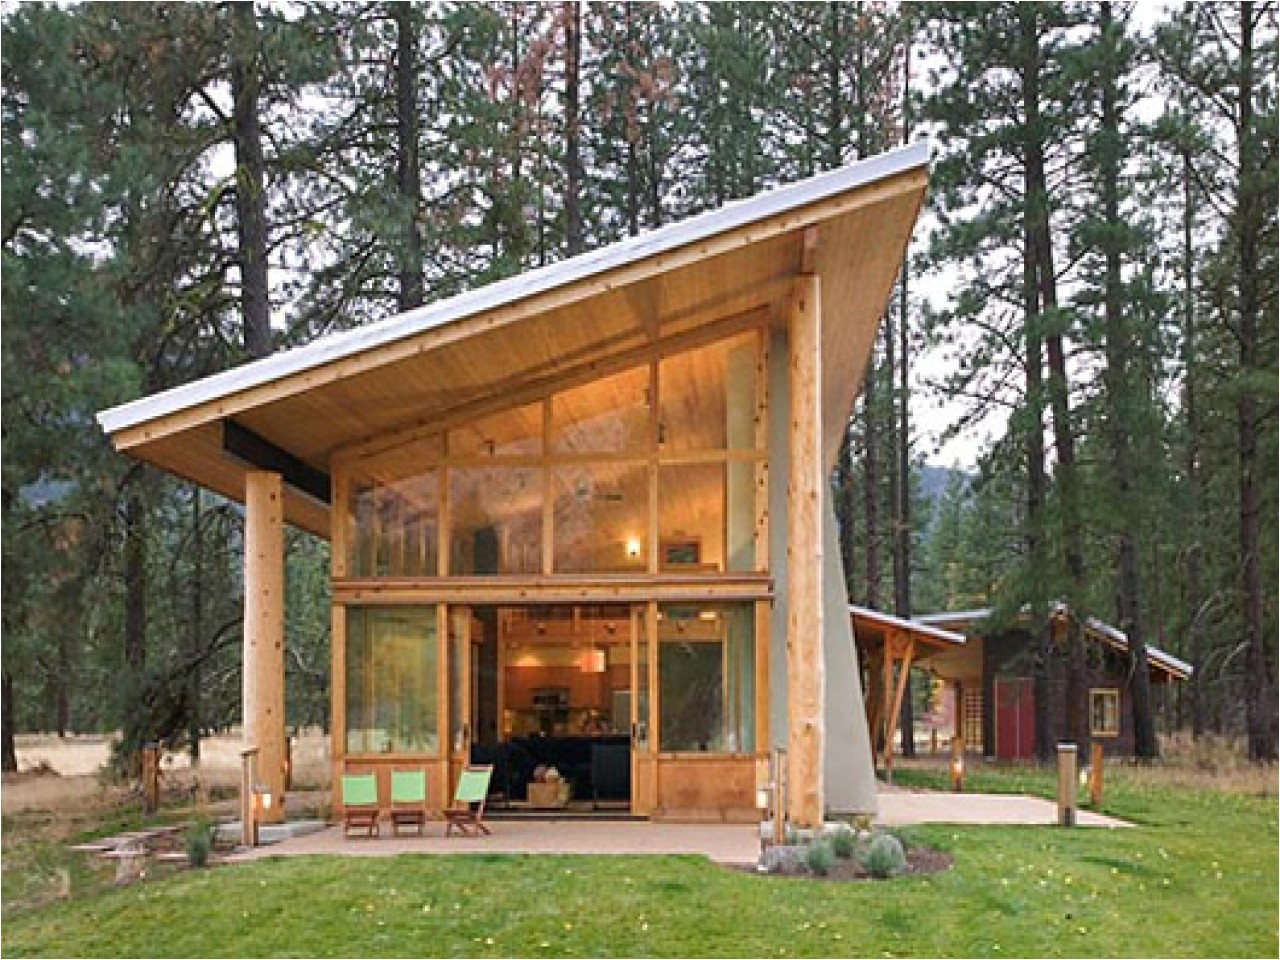 bd8d3d4c6f0eb291 small cabins tiny houses small cabin house design exterior ideas